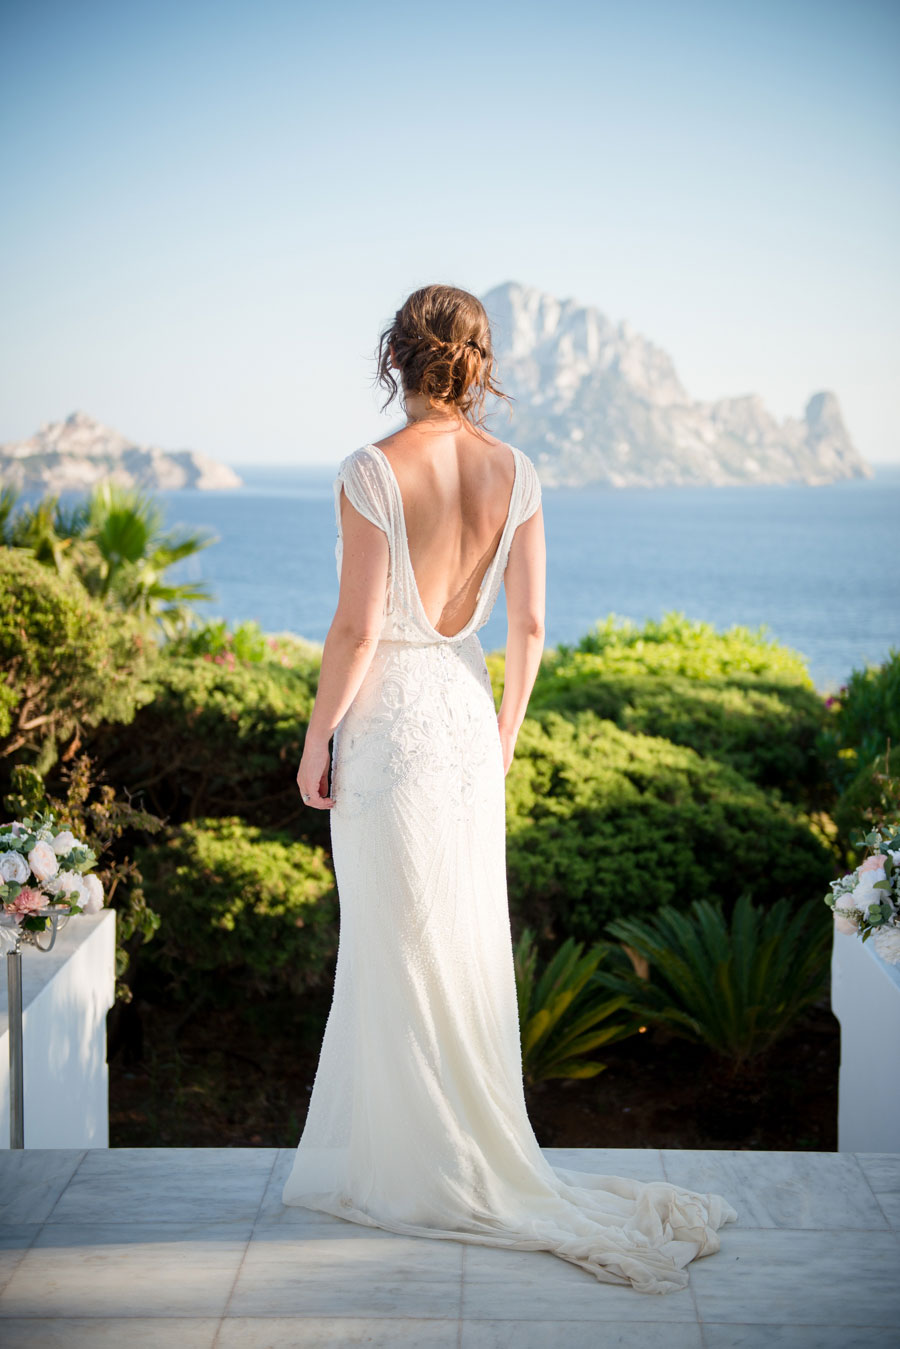 nicola-and-jimmy-es-vedra-ibiza-gypsy-westwood-photography-96